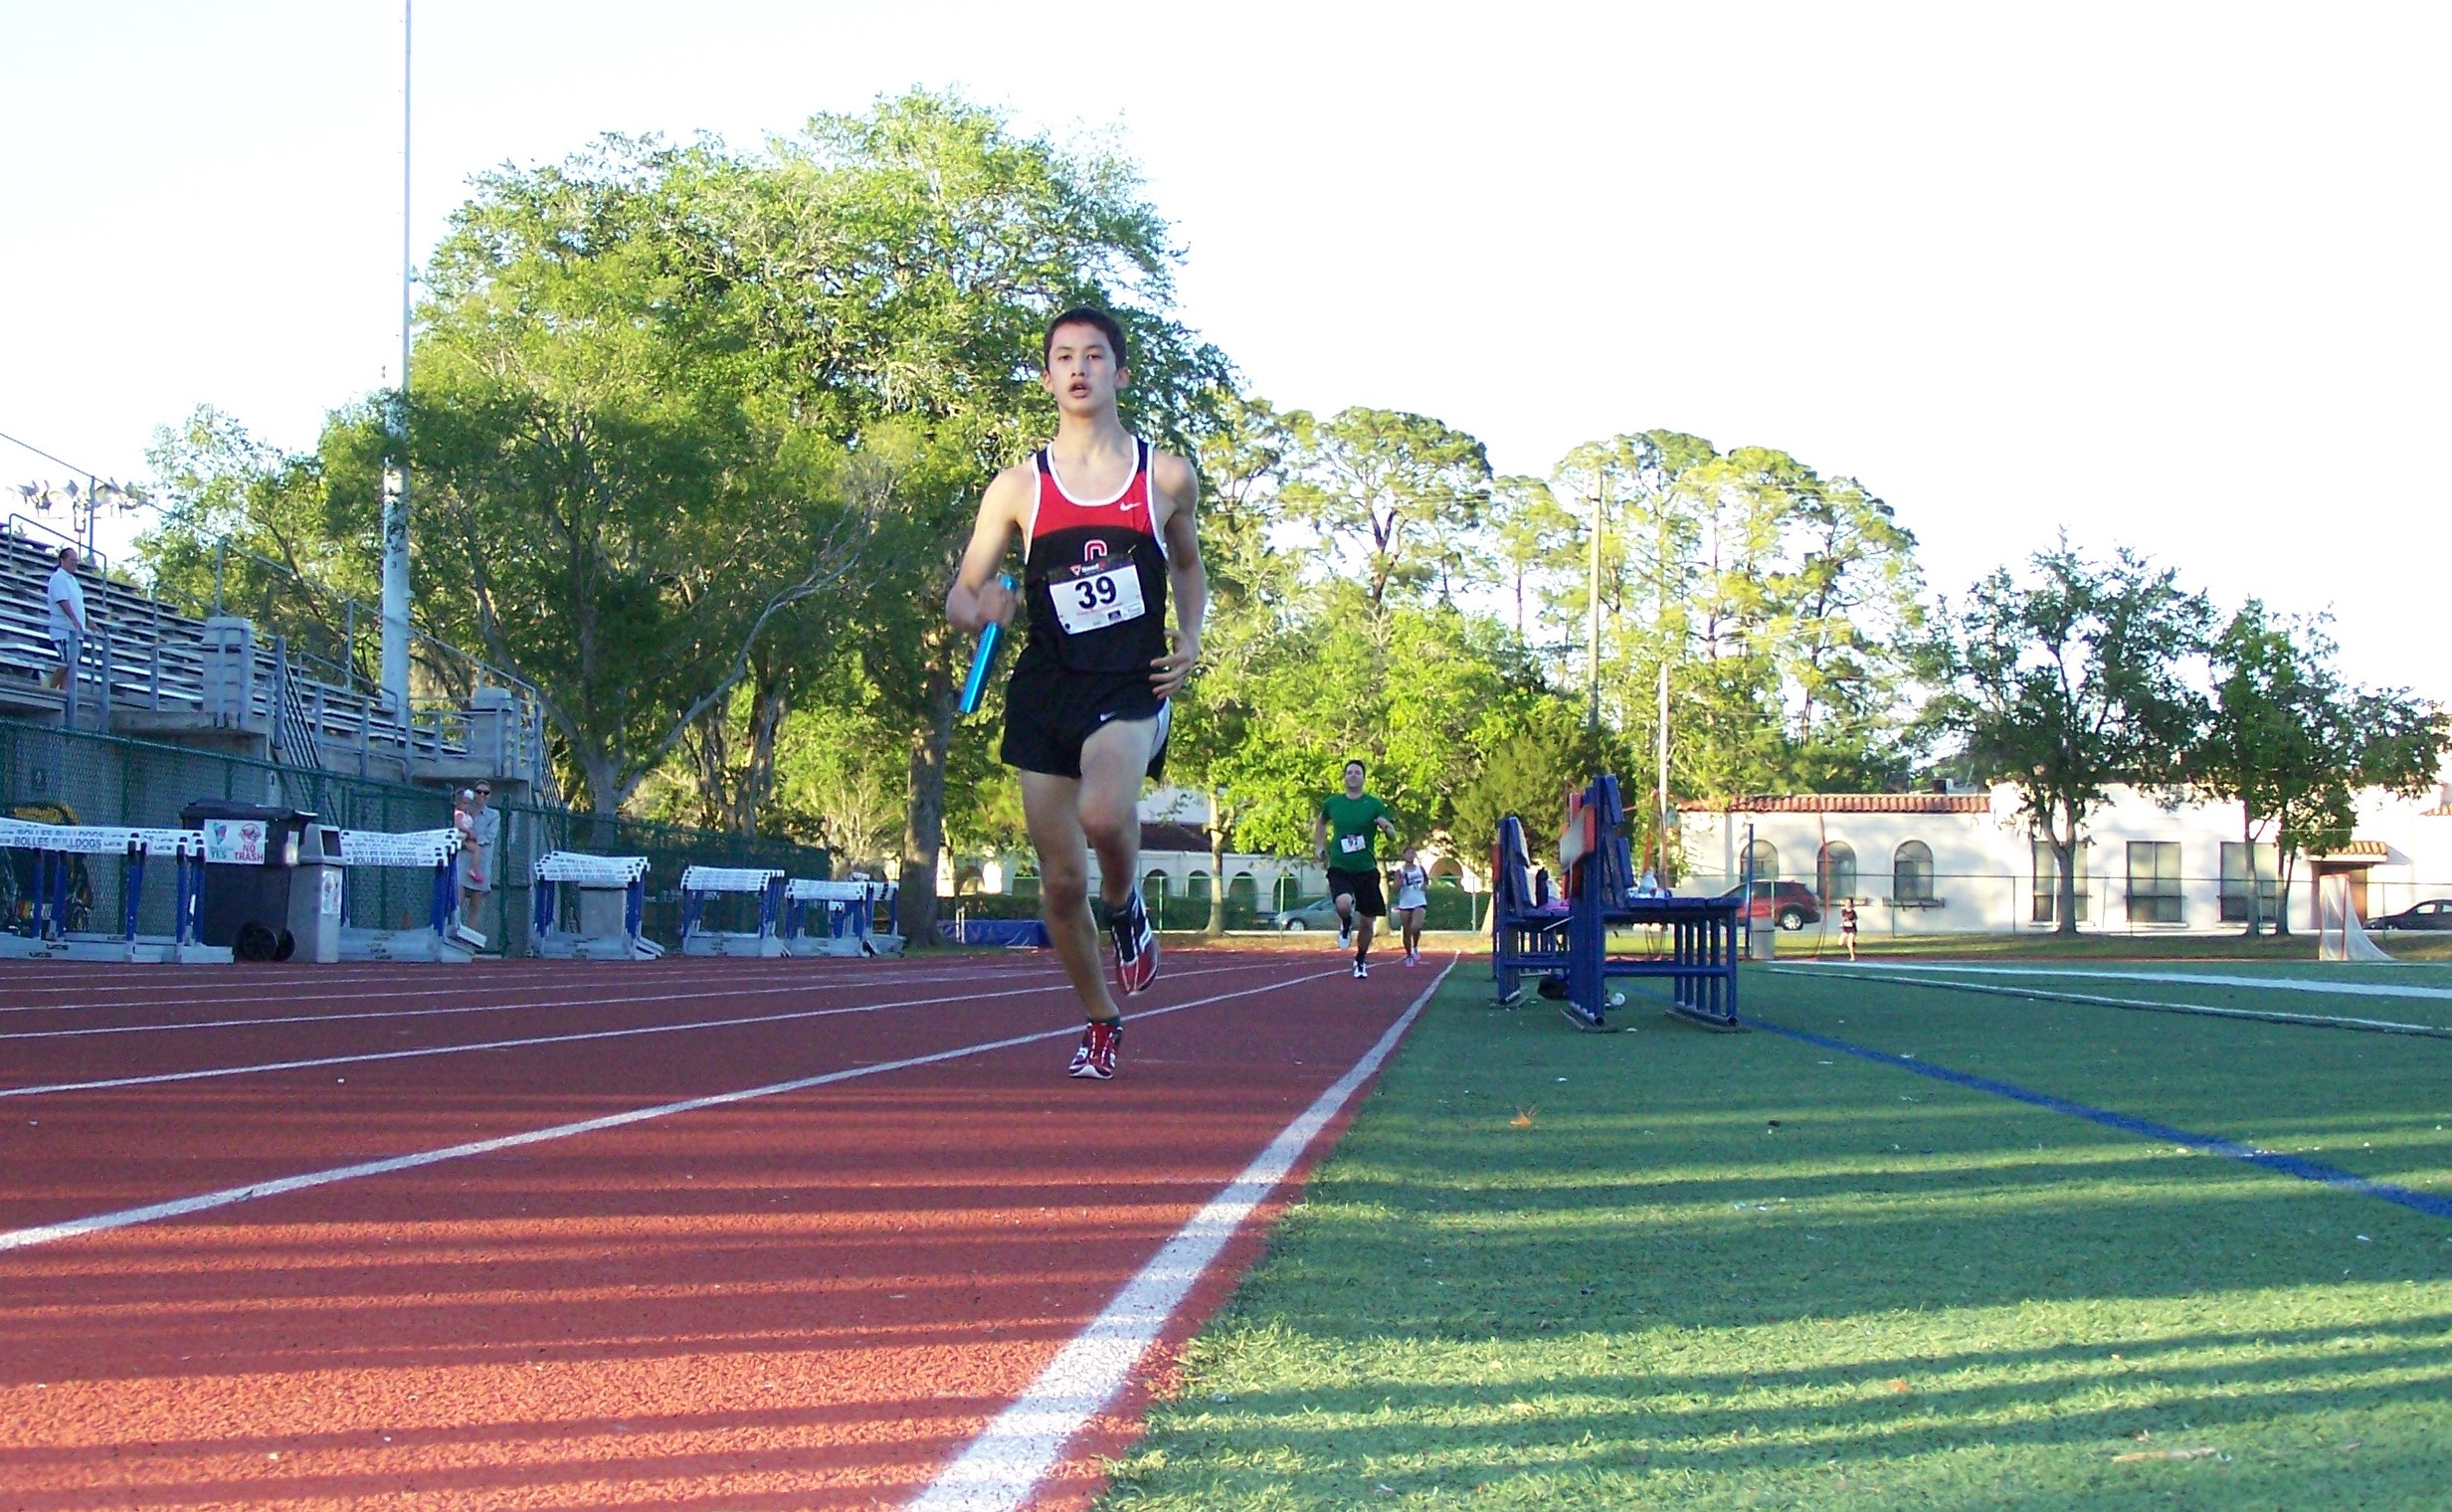 unf track meet results 2013